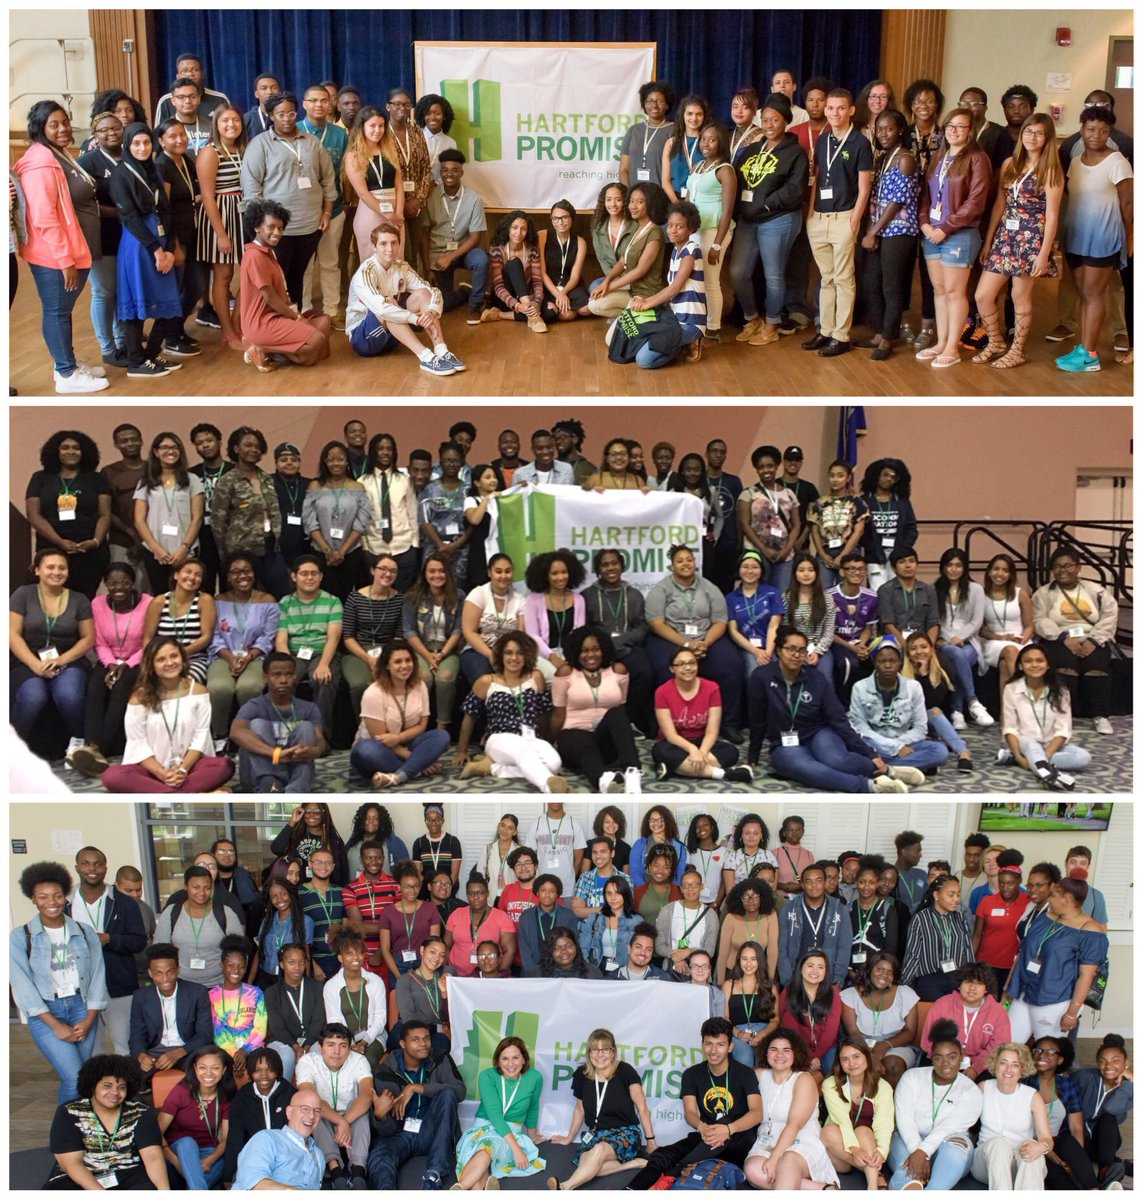 3 years of #PromiseScholarDays. 3 years of #PromiseScholars. 400 #PromiseScholars. 60+ colleges around the country. Transforming lives. Transforming Hartford. #thisiswhatwedo.<br>http://pic.twitter.com/fICsyHrl5y